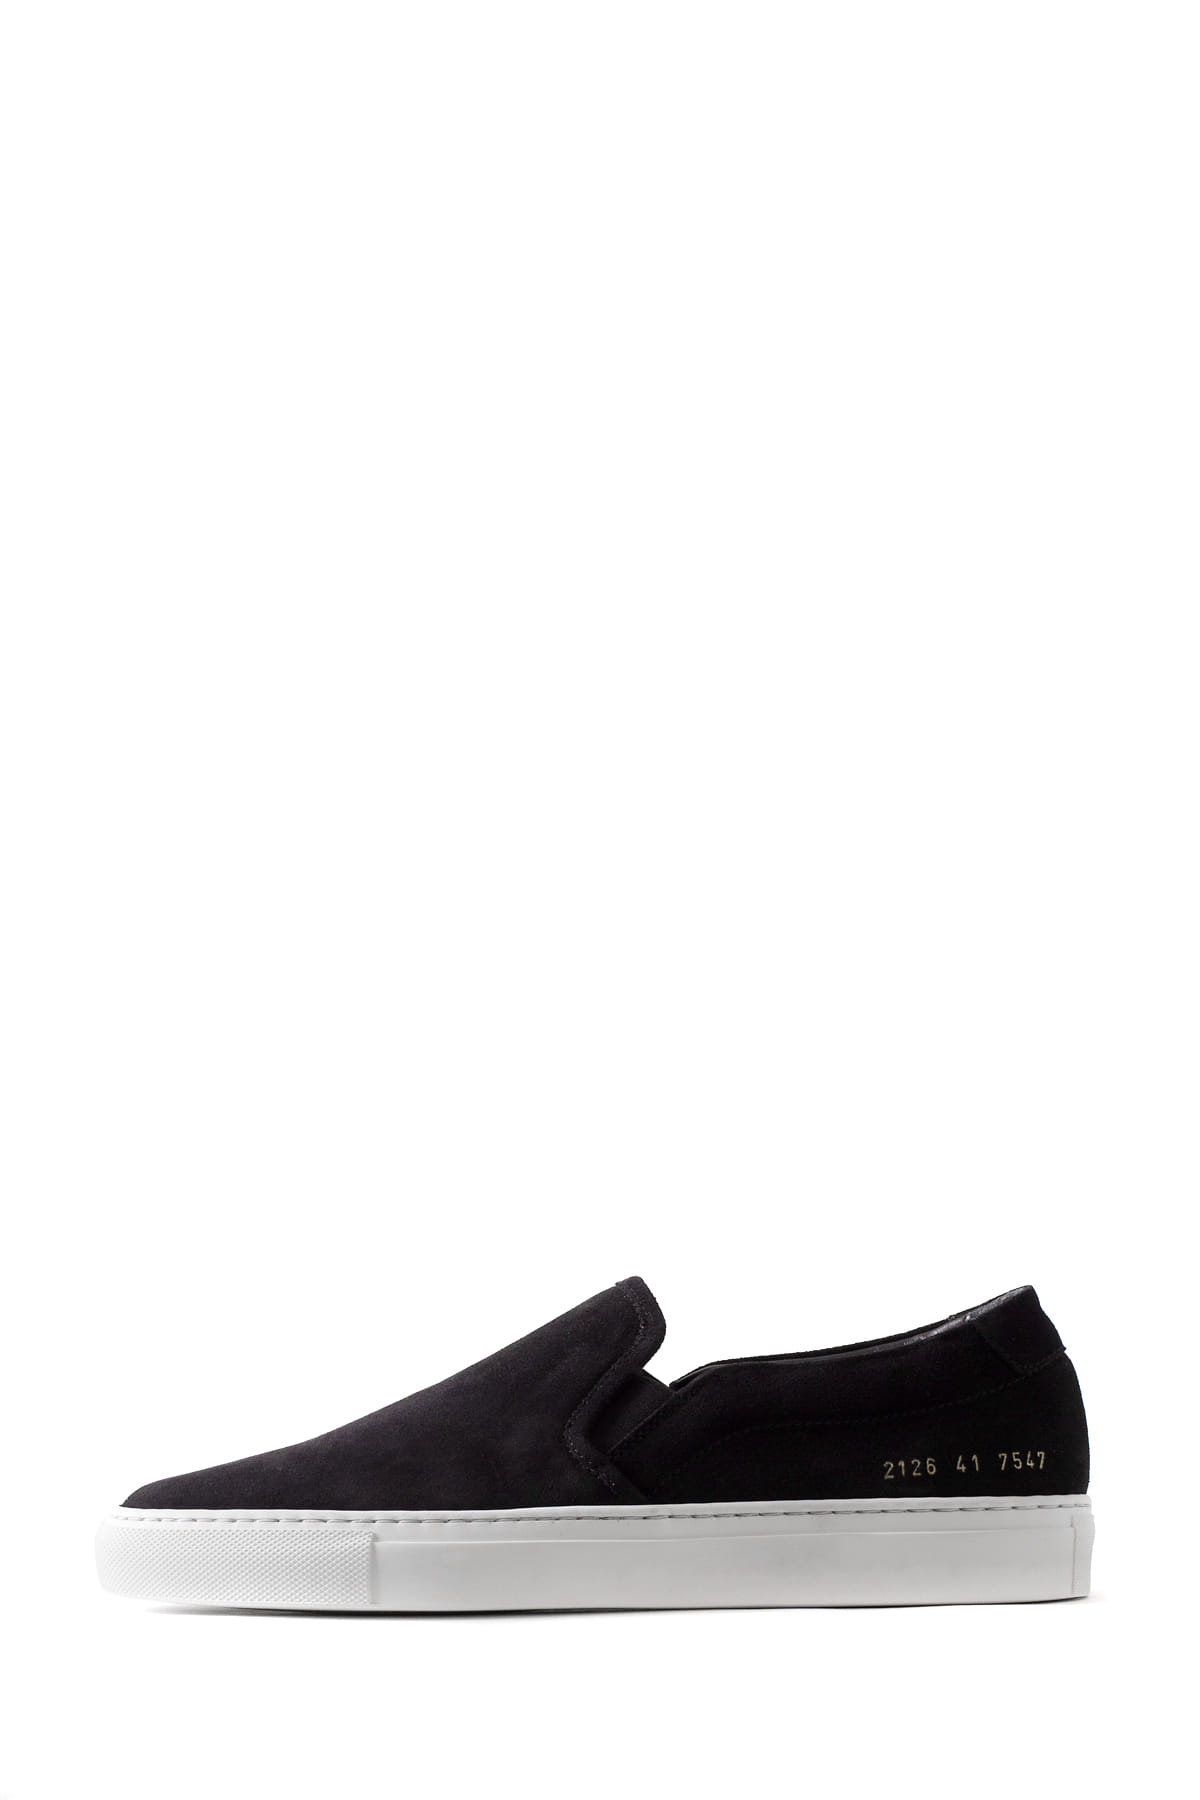 Common Projects : Silp On in Suede 2126 (Black)